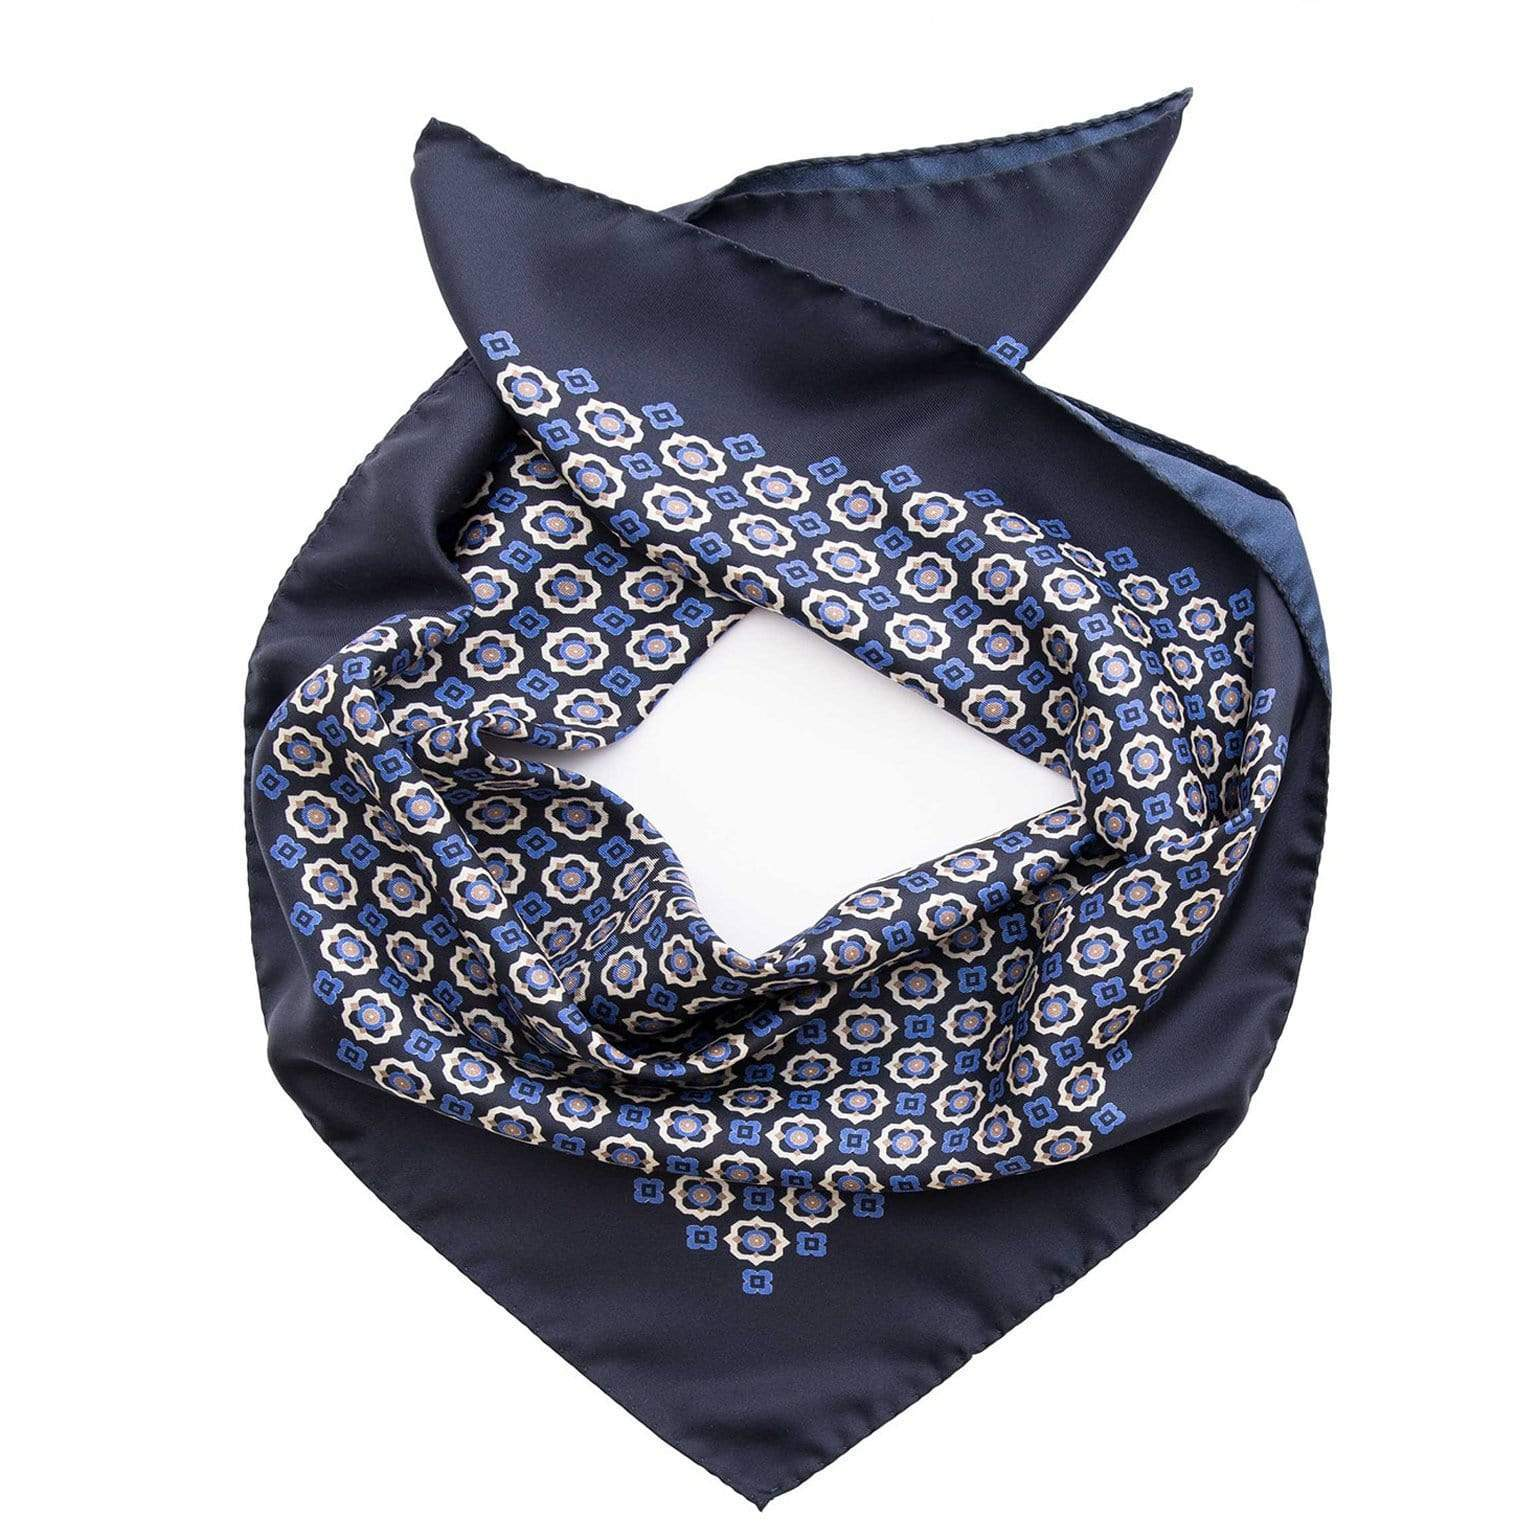 Mens Silk Neckerchief - Blue Print - Made in Italy